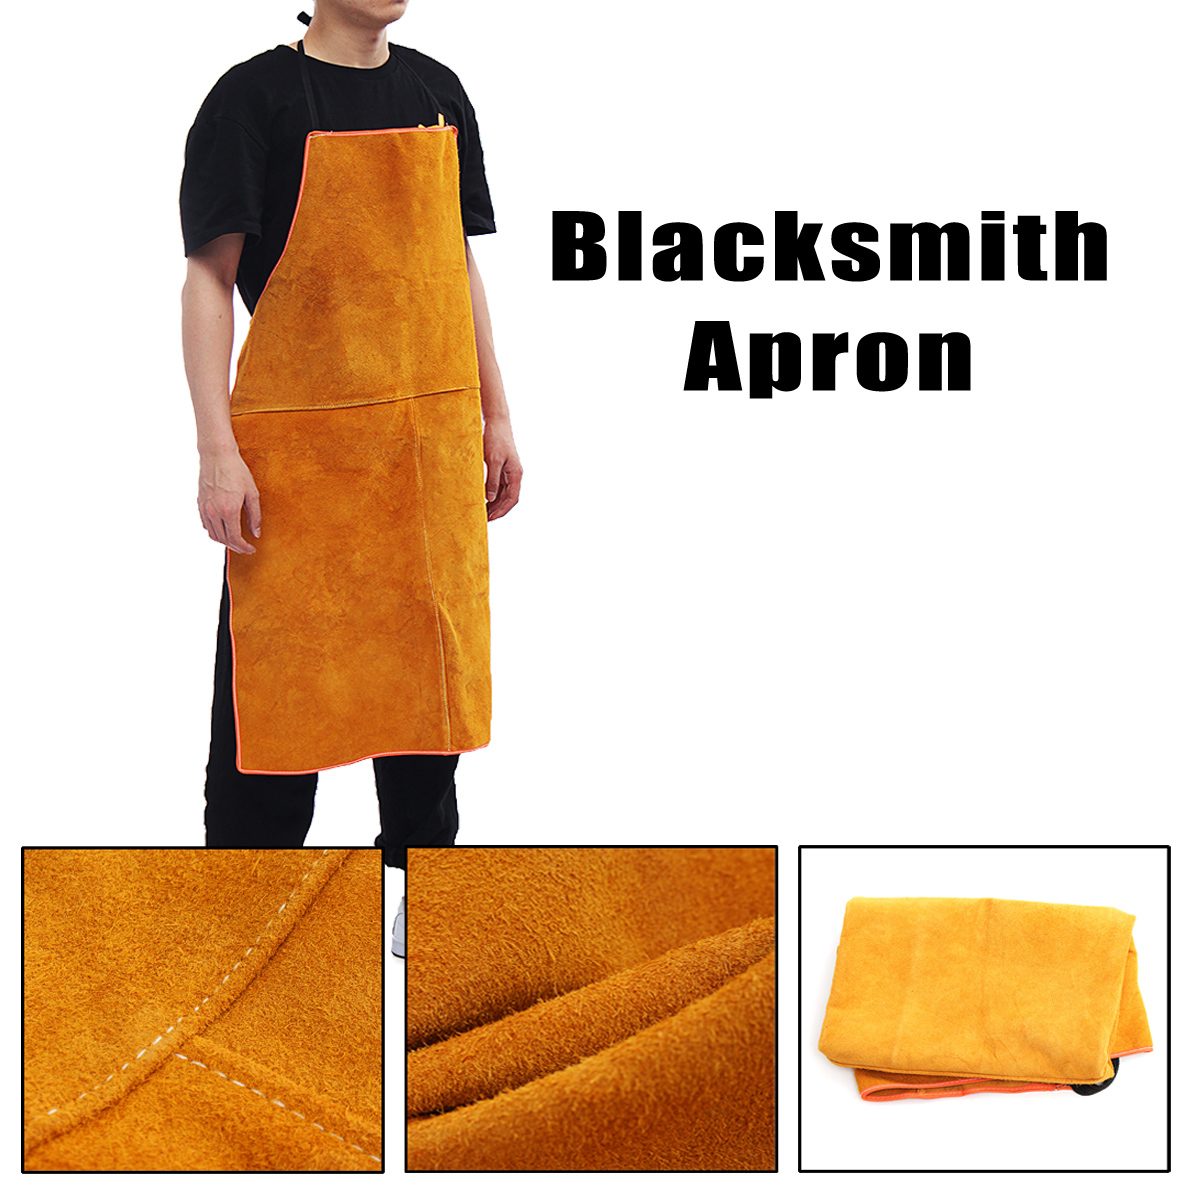 Full Cowhide Leather Welding Apron Bib Blacksmith Apron 3 Size Yellow Electric welding Safety Clothing my apron